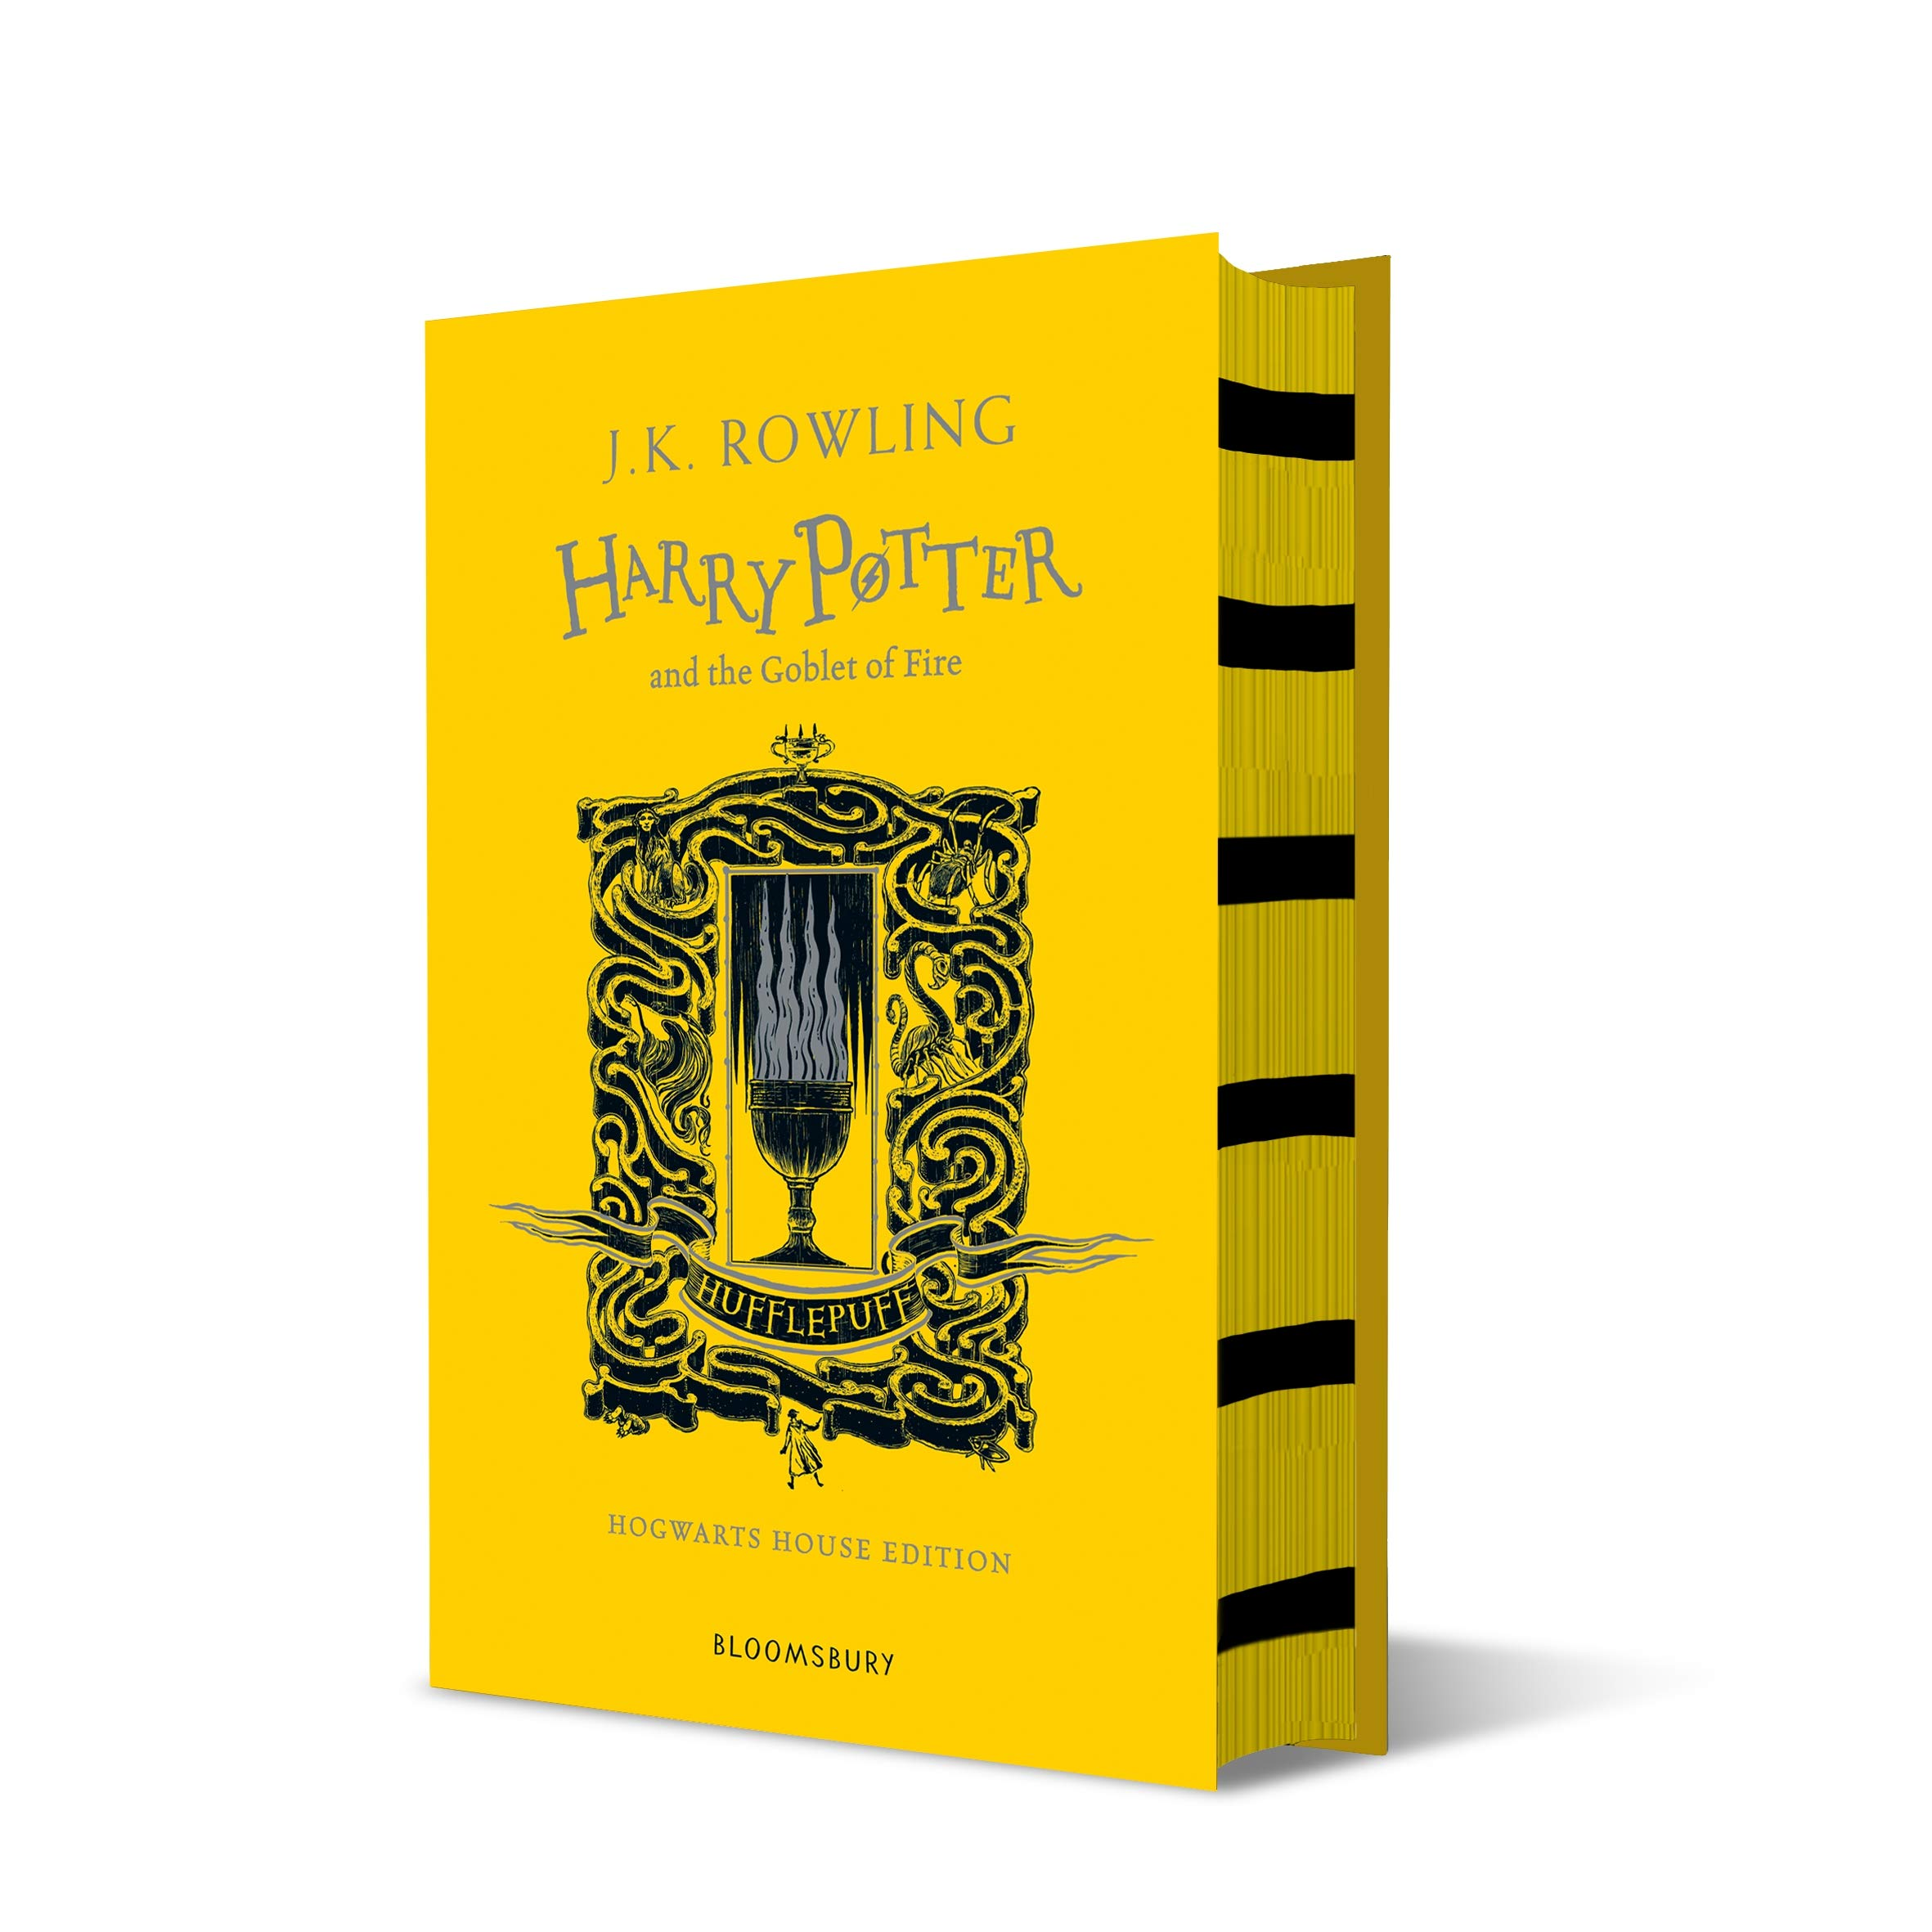 Image for Harry Potter and the Goblet of Fire Hufflepuff Edition (Harry Potter House Editions)